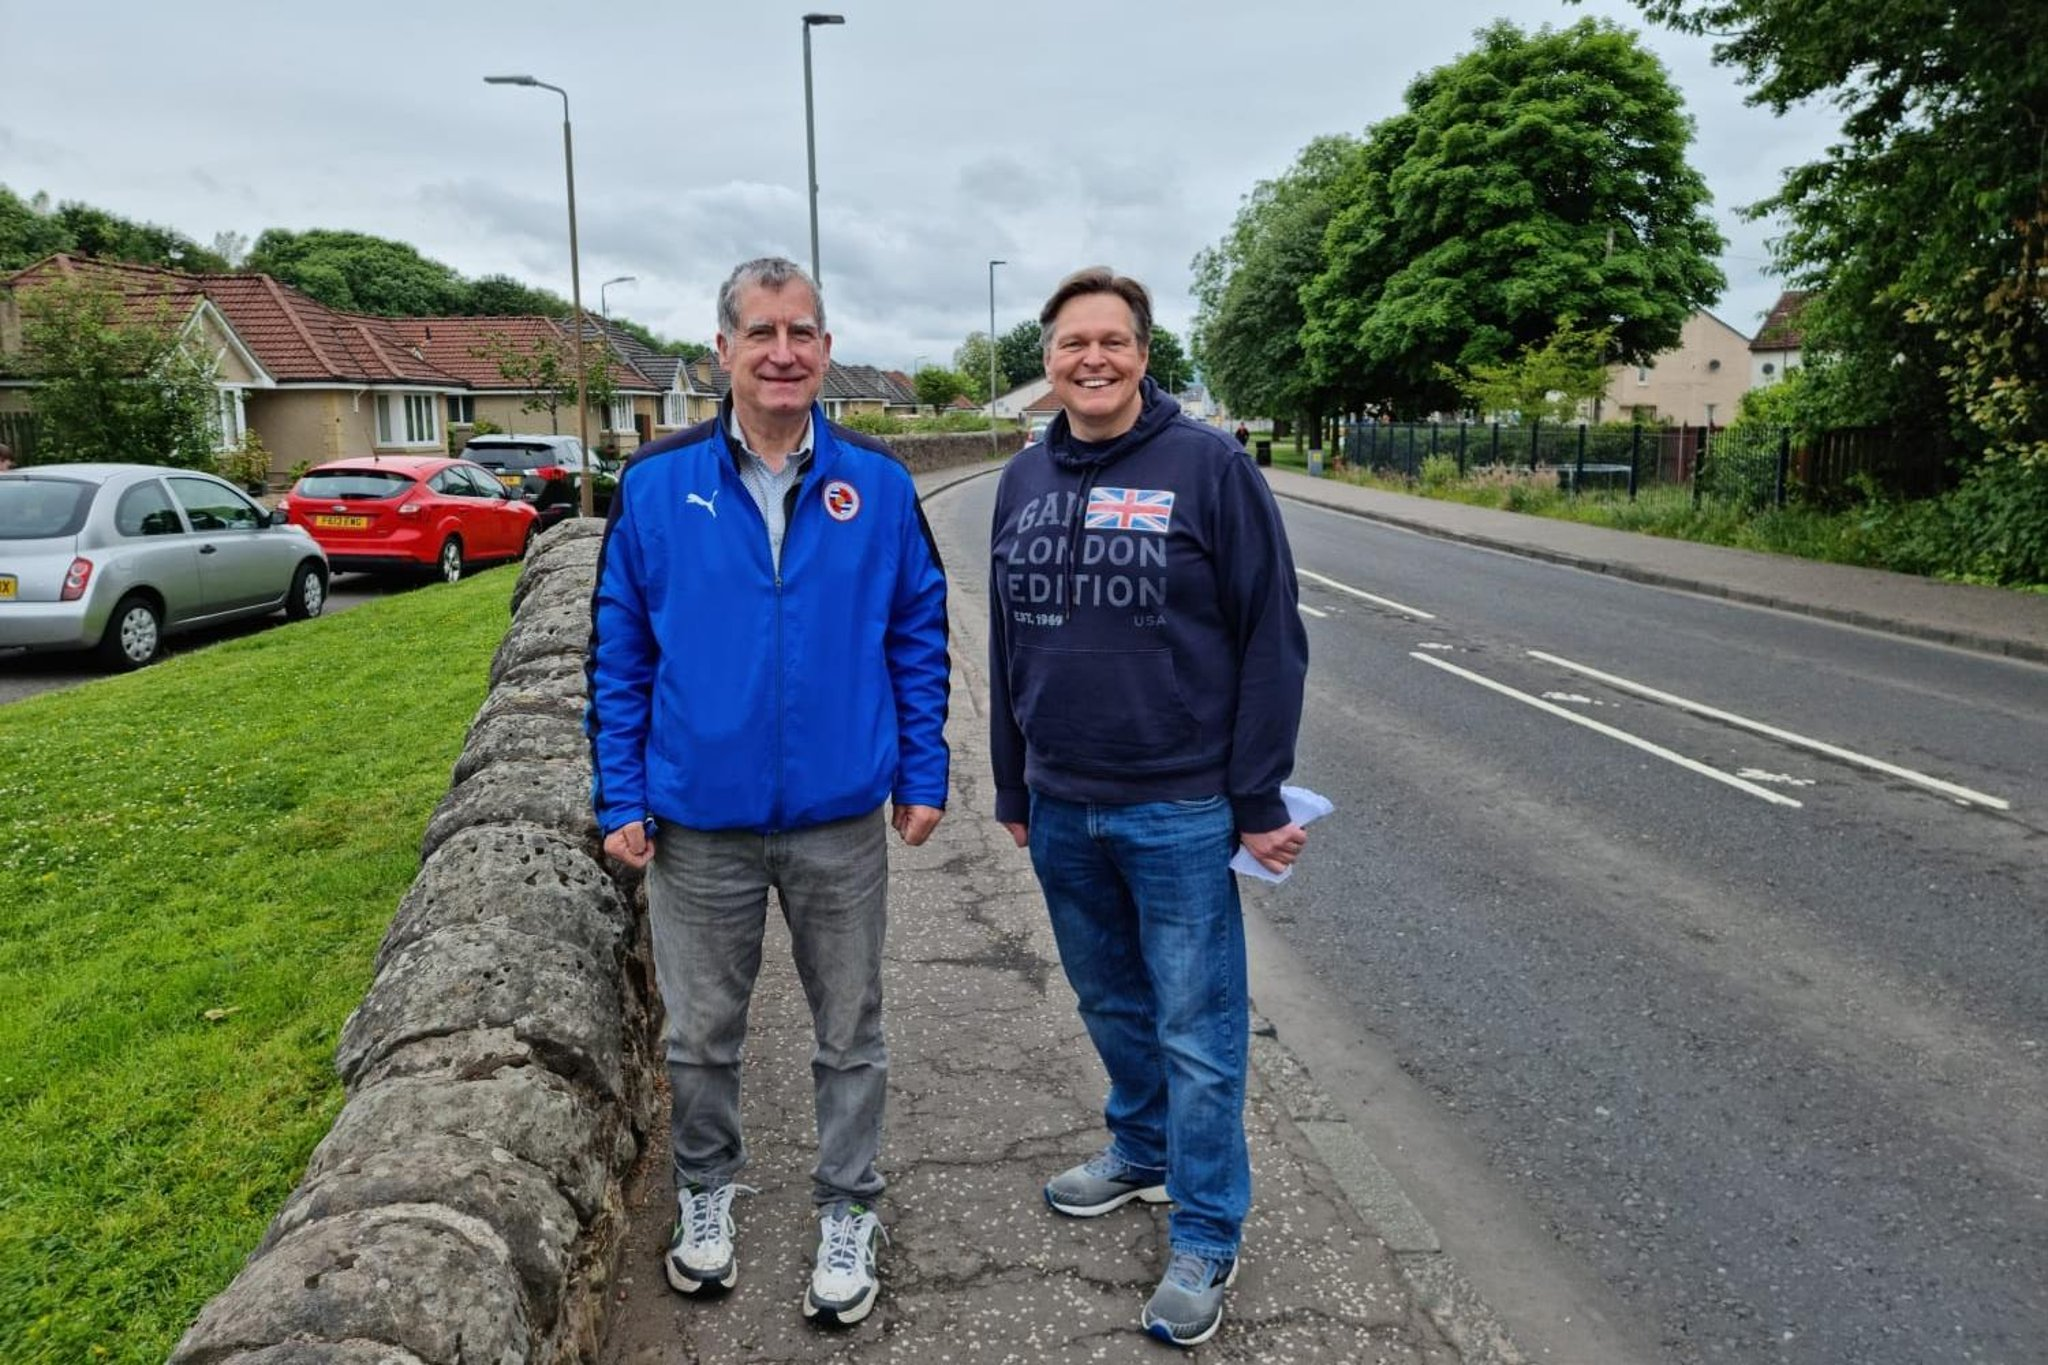 Airth speeding concerns prompt calls for Scottish councils to set limits